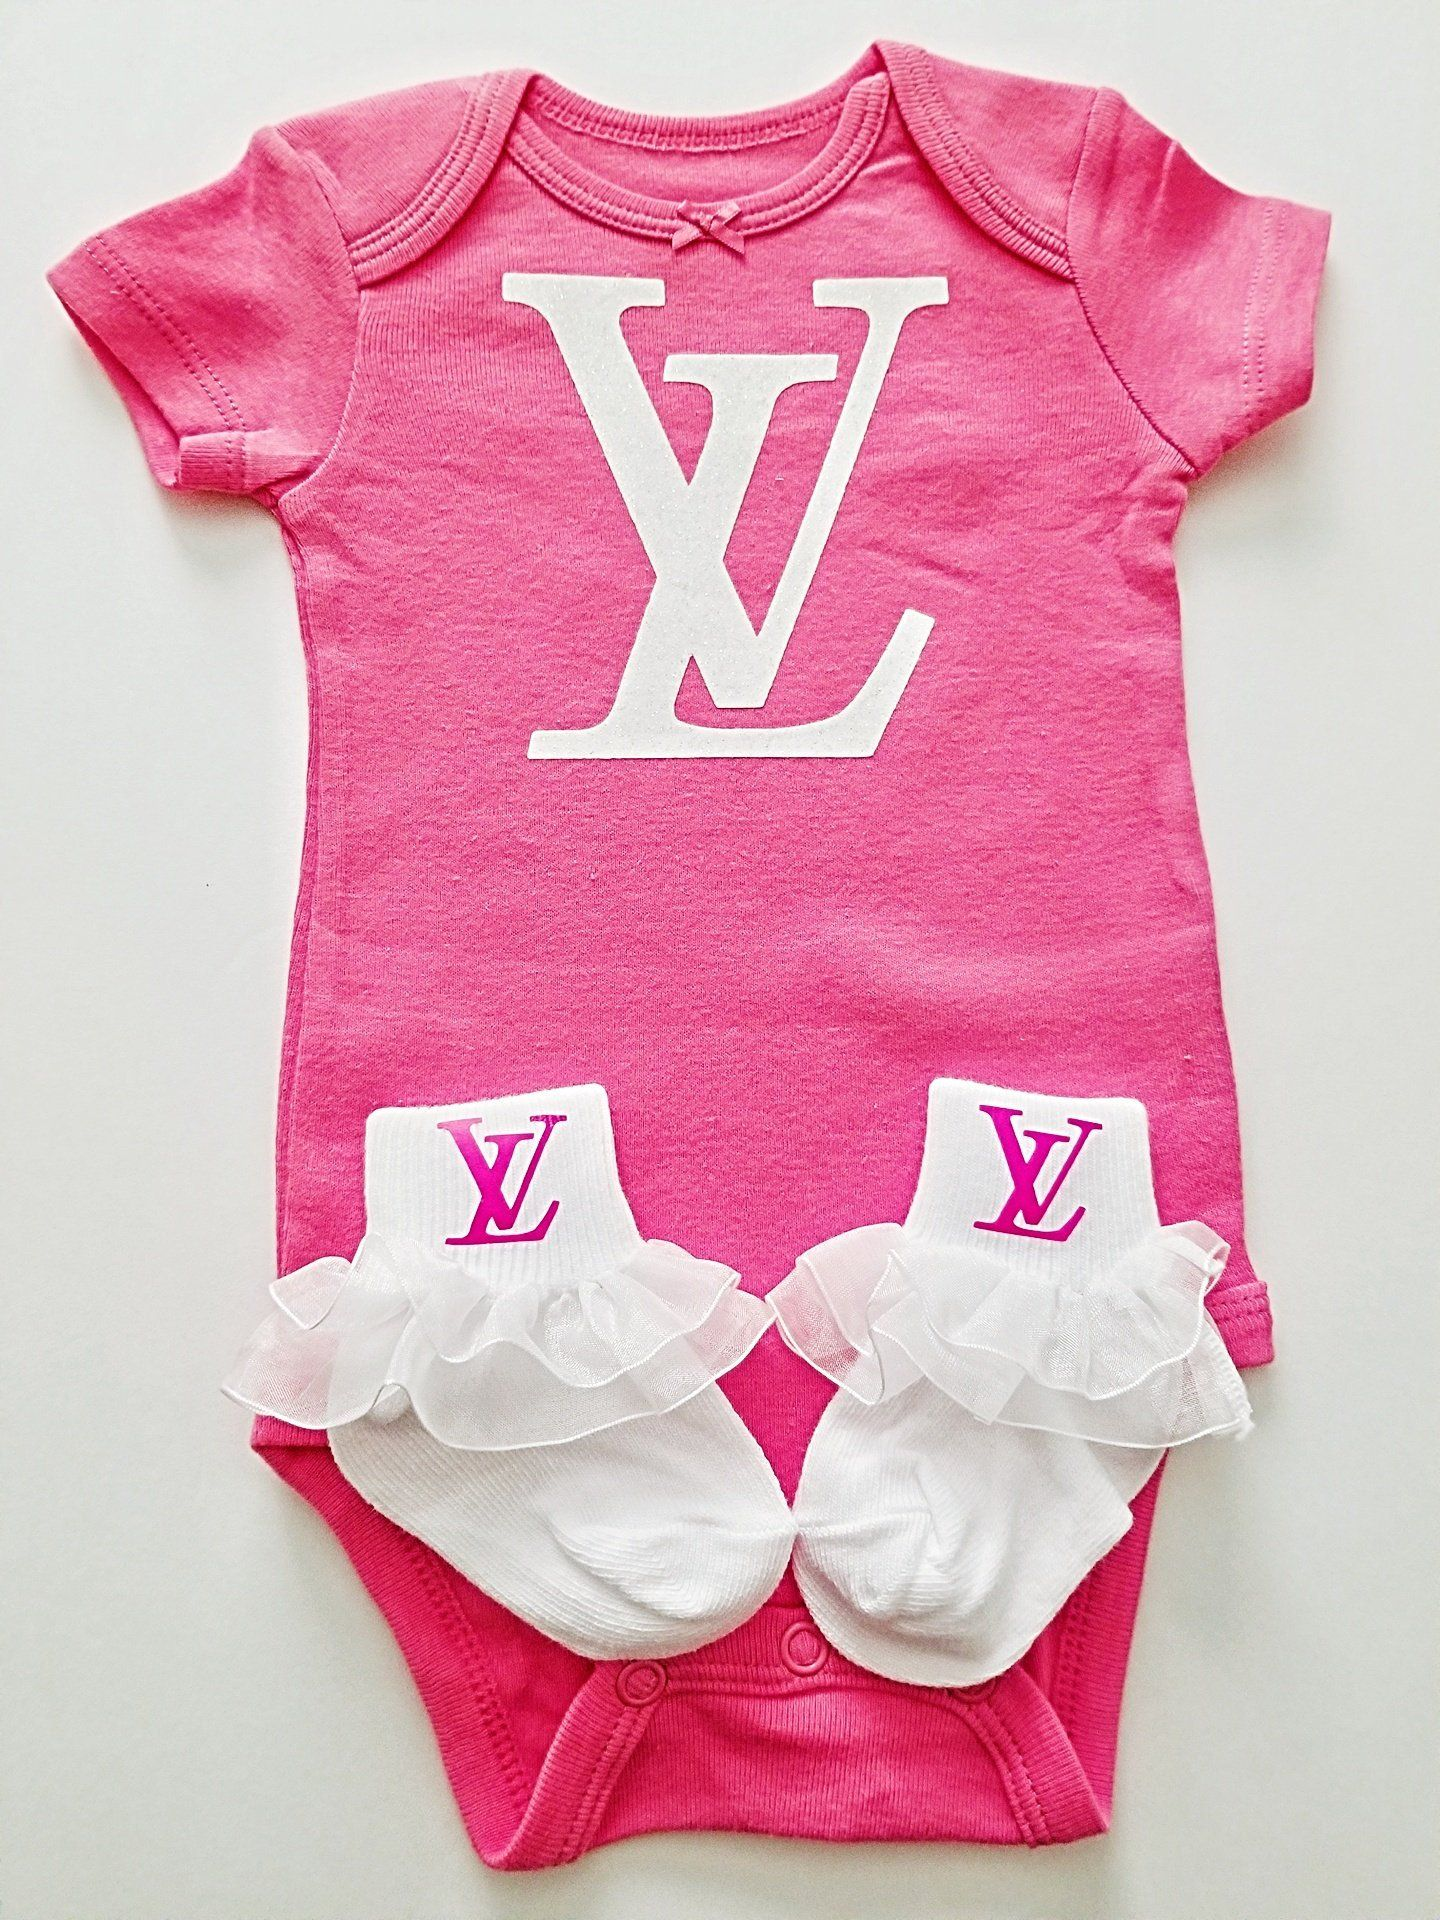 Designer Inspired Louis Vuitton 3 Month One Piece Outfit With Matching Lv Socks Pink Louis Vuitton Inspired Onesie Baby Girl Outfits Newborn Newborn Girl Outfits Cute Baby Girl Outfits